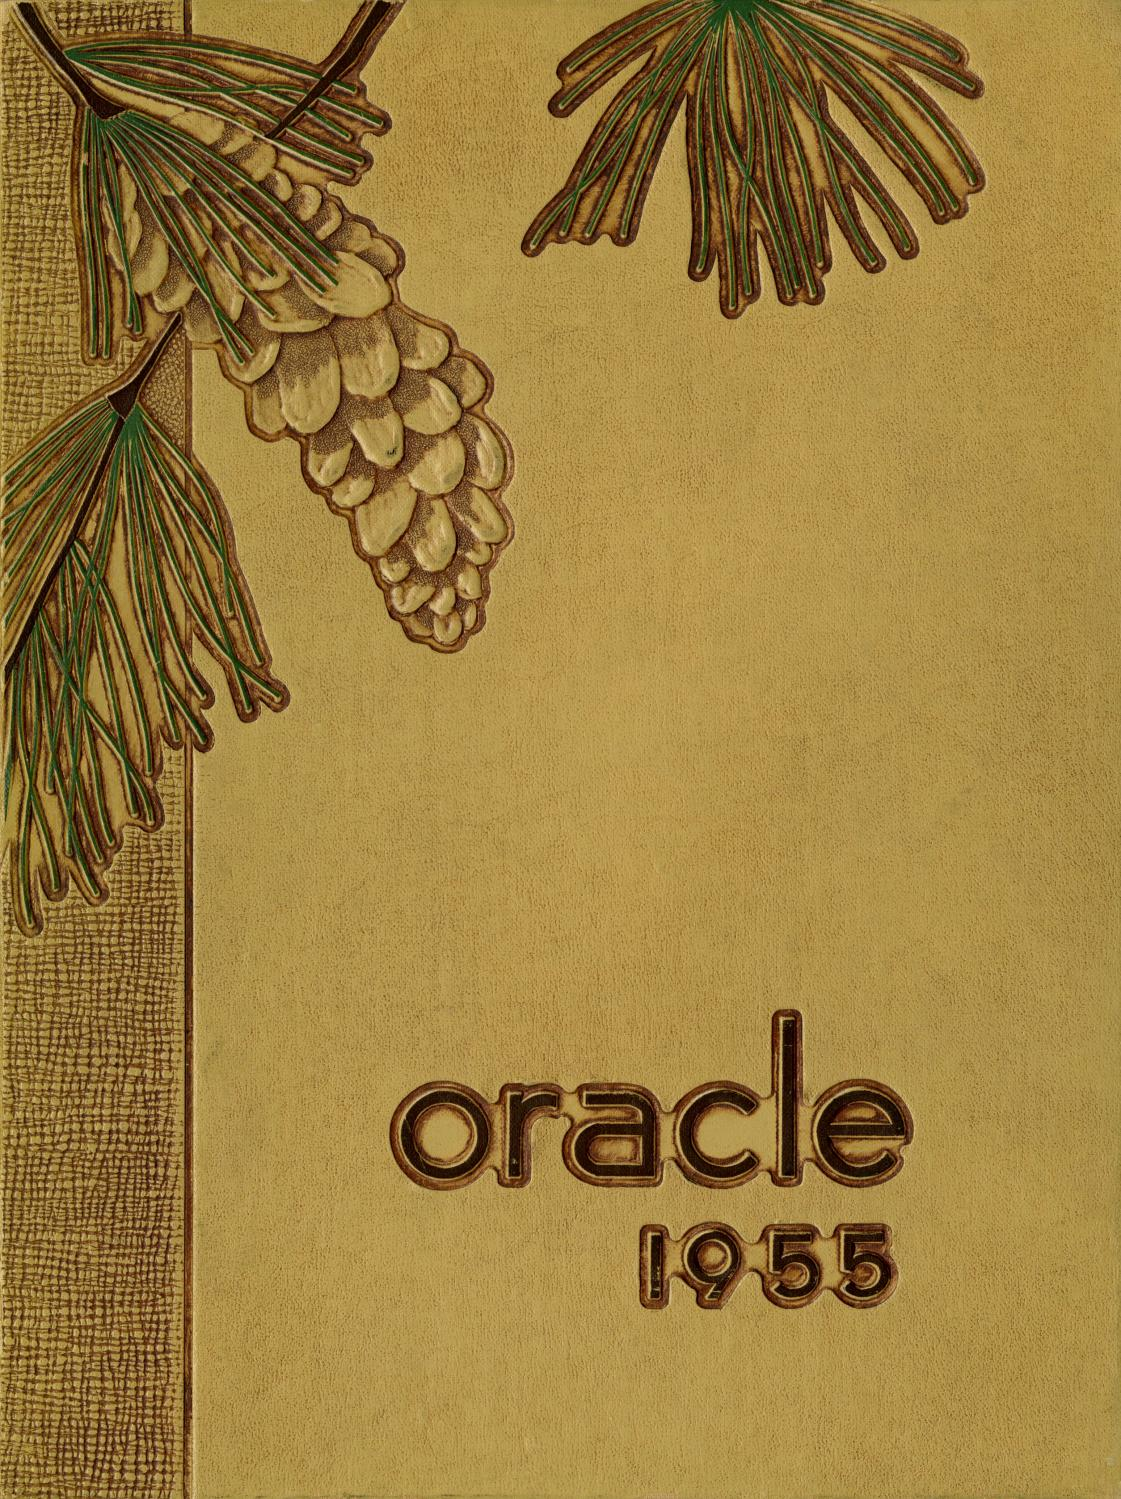 The Colby Oracle 1955 by Colby College Libraries - issuu